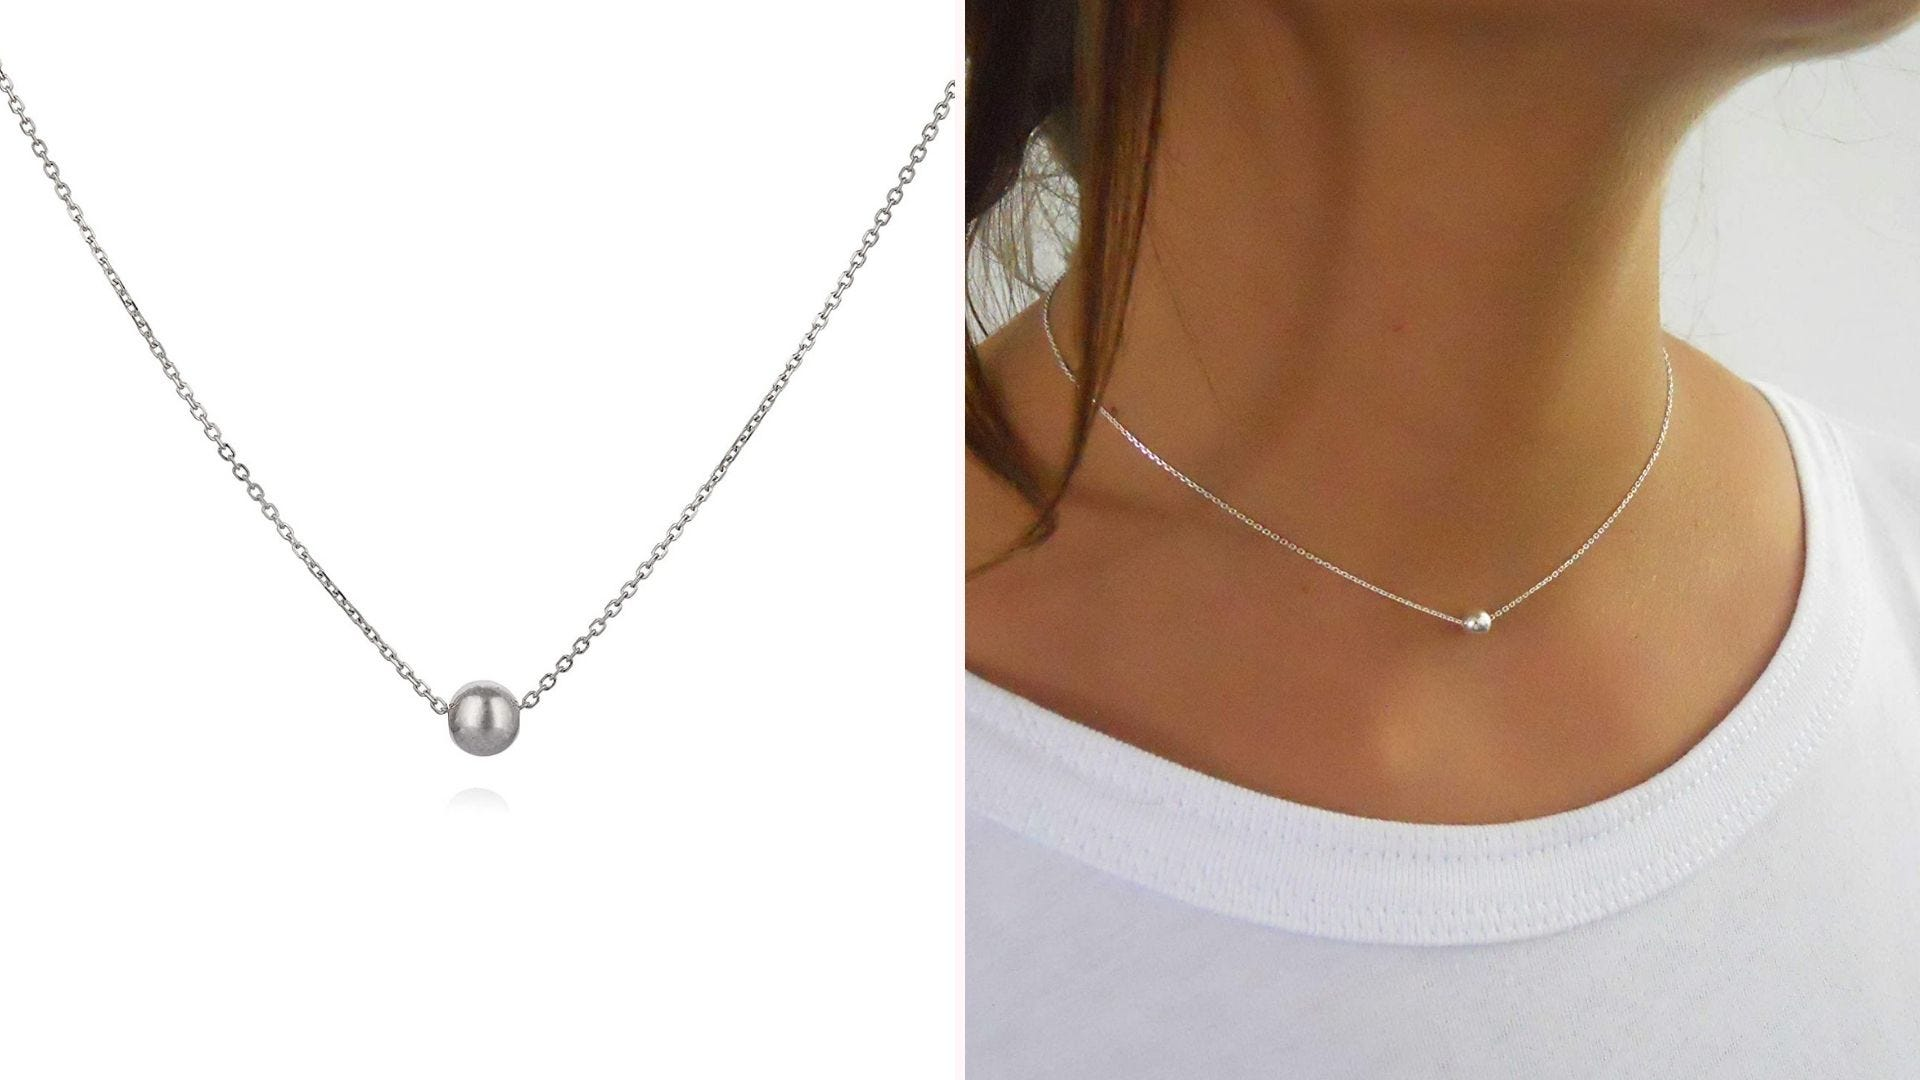 delicate silver chain choker with small silver ball on model's neck